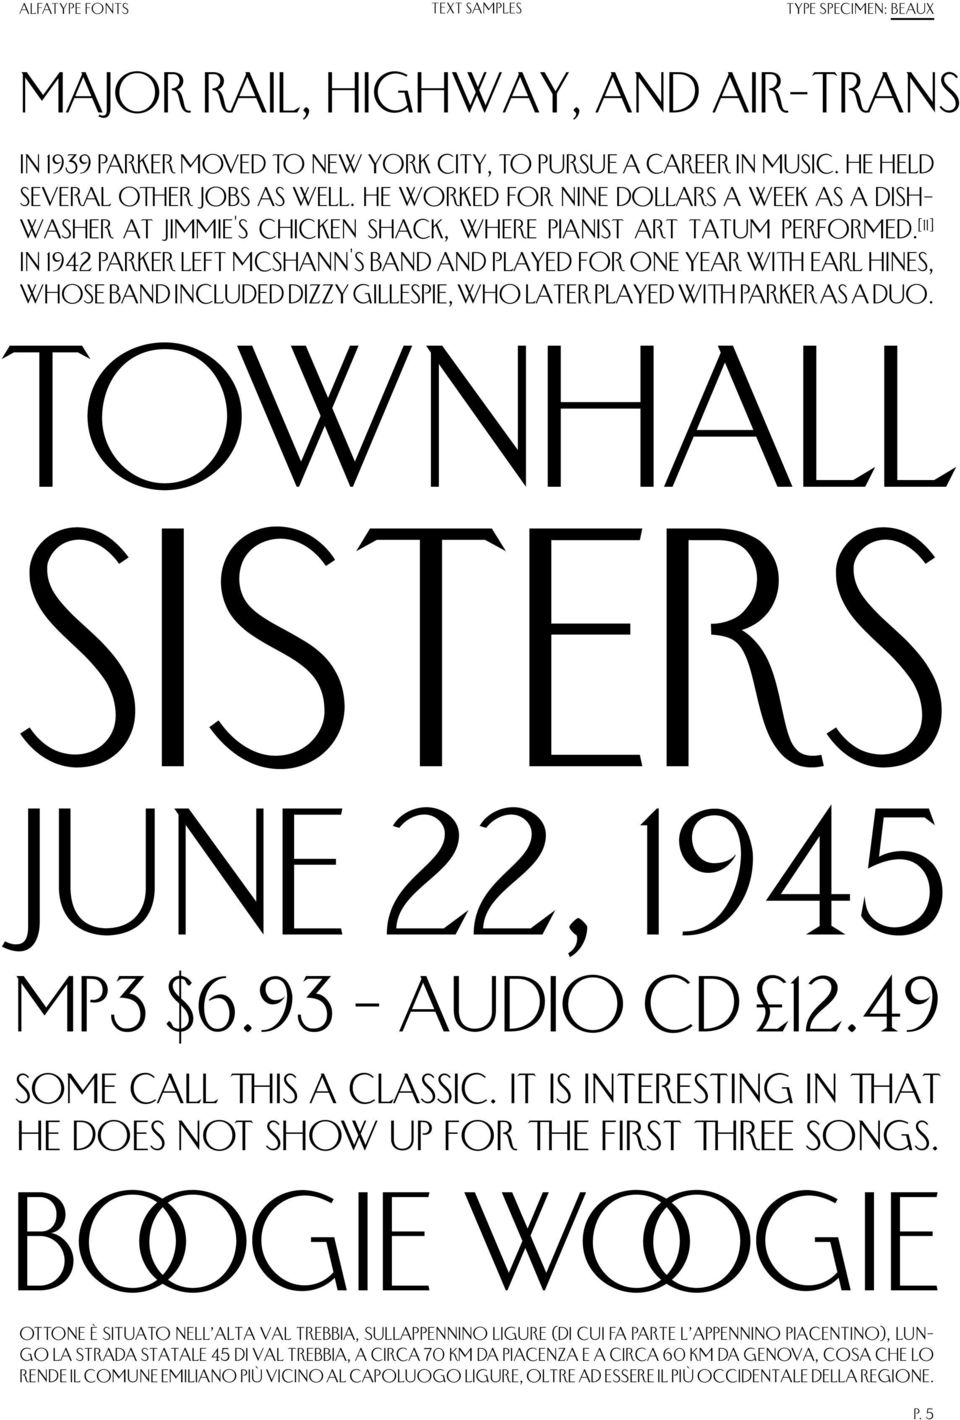 [11] In 1942 Parker left McShann's band and played for one year with Earl Hines, whose band included Dizzy Gillespie, who later played with Parker as a duo. TownHall sisters June 22, 1945 MP3 $6.